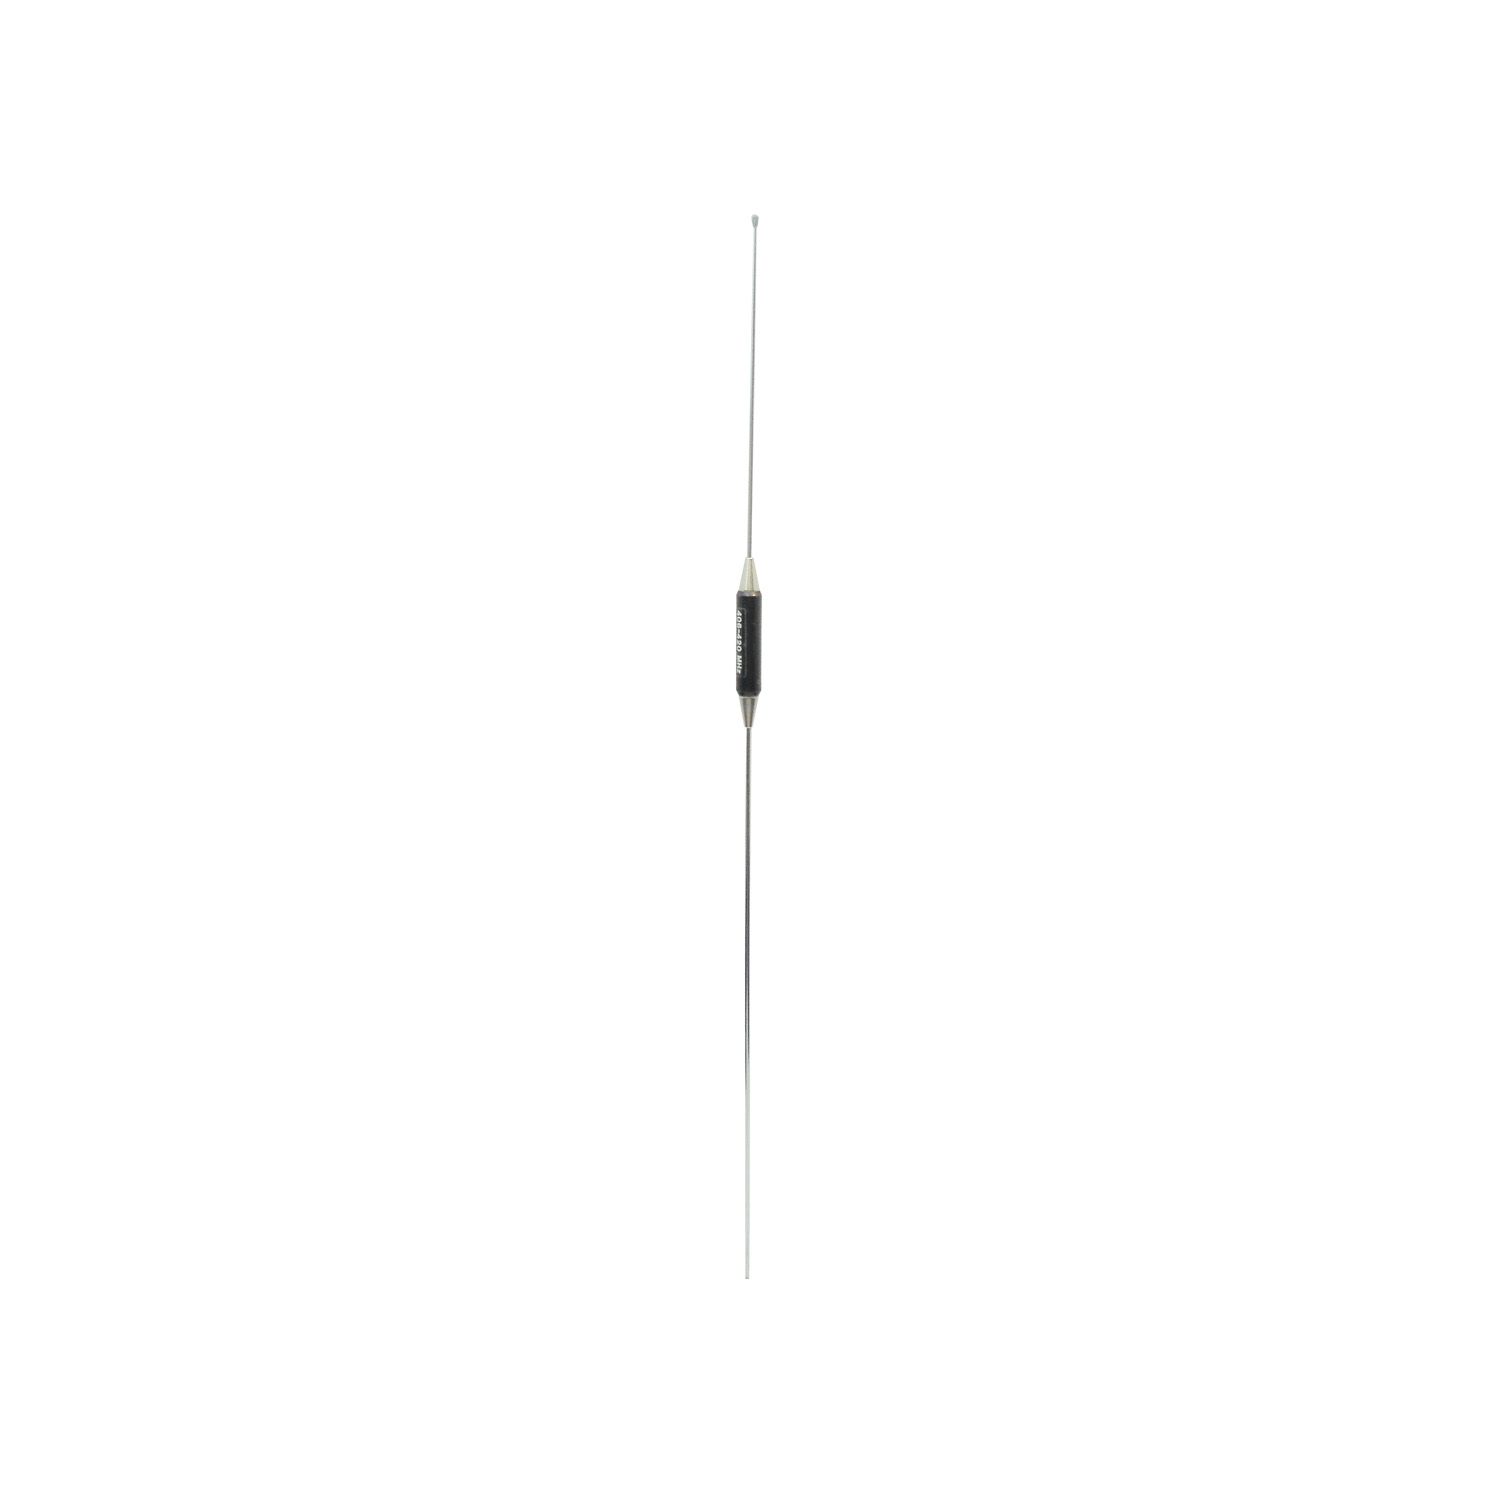 W152 - LARSEN CLOSED COIL 5/8 OVER 1/2 ENCLOSED .100 DIAMETER STAINLESS STEEL WHIP ANTENNA(406-420MHZ)